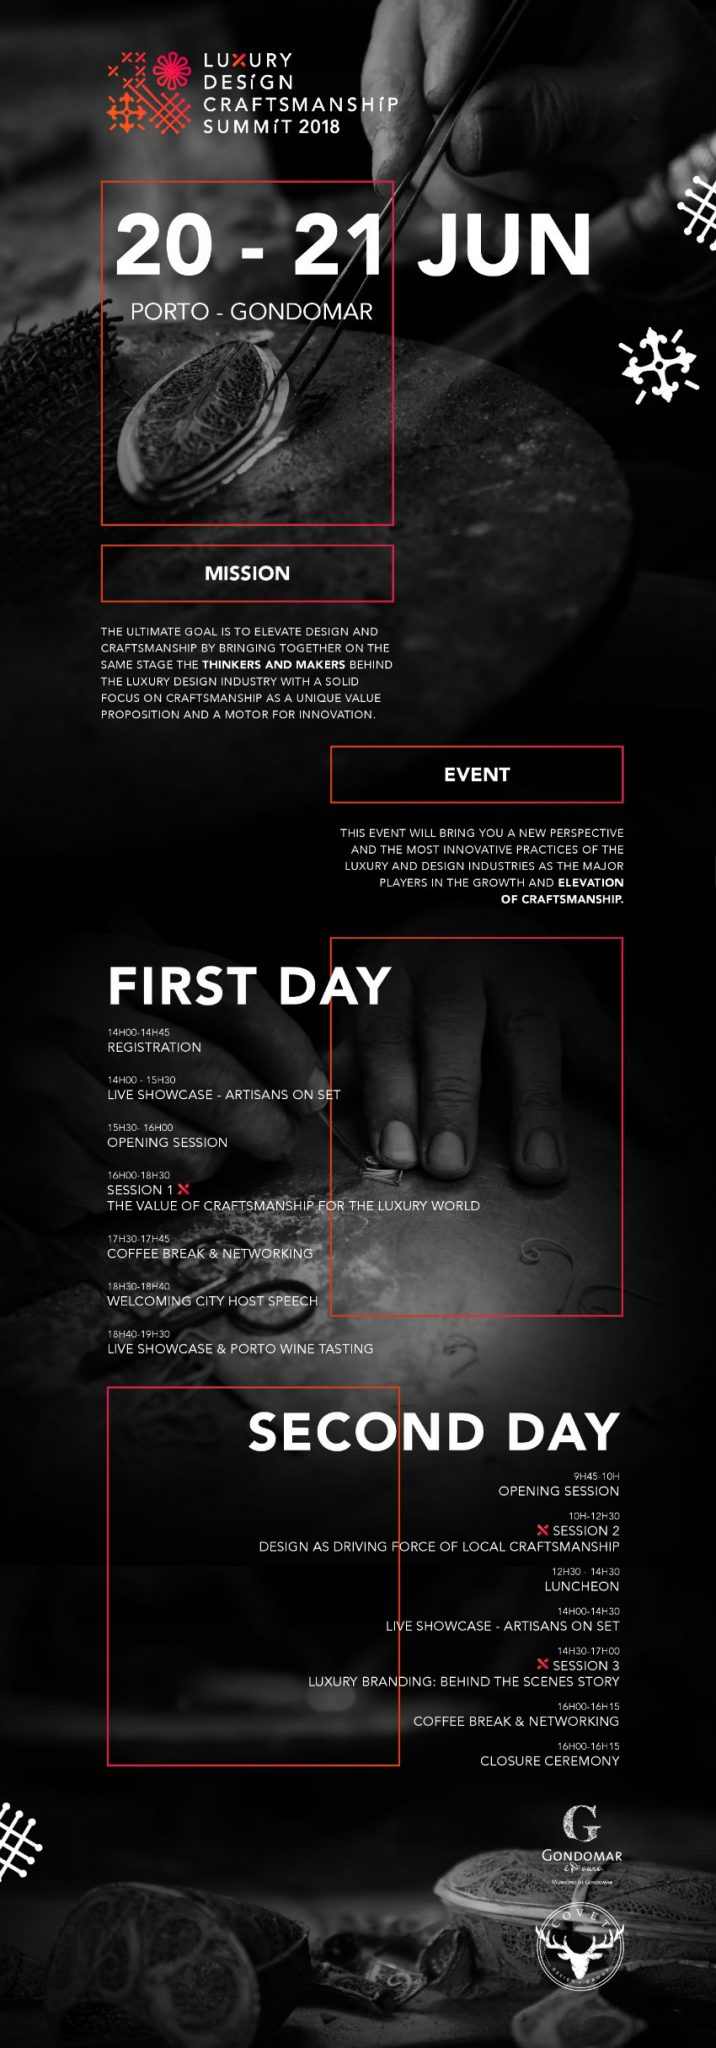 Luxury Design & Craftsmanship Summit 2018: Opportunity Of a Lifetime! luxury design Get To Know The Luxury Design & Craftsmanship Summit 2018 001 summit infographic 001